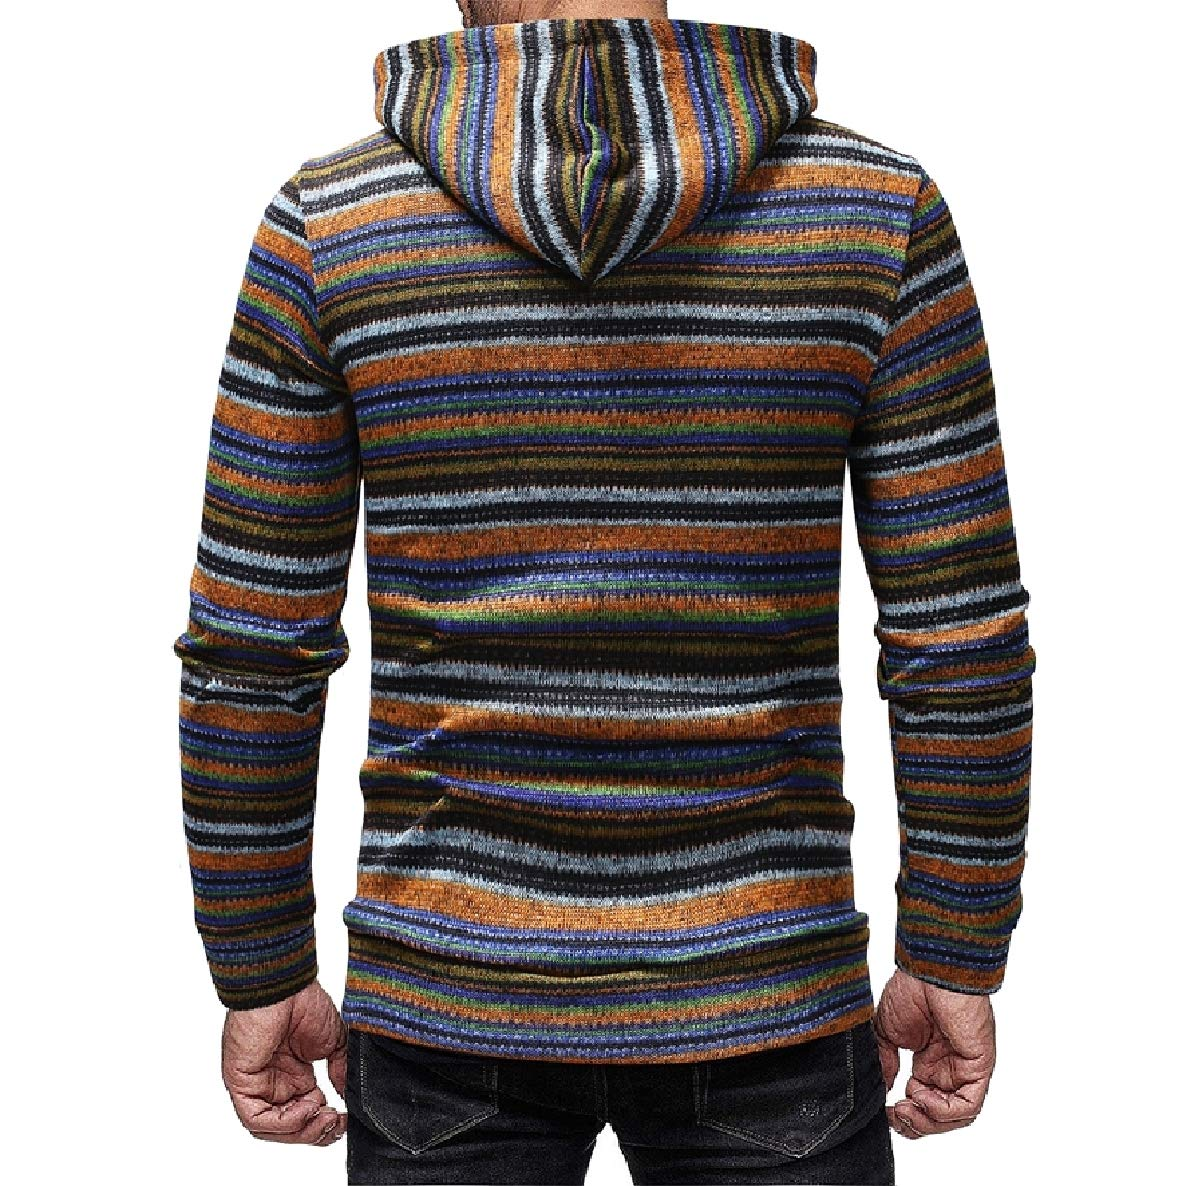 WillingStart Men Silm Thin Colortone Striped Plus Size Top Pullover Sweater